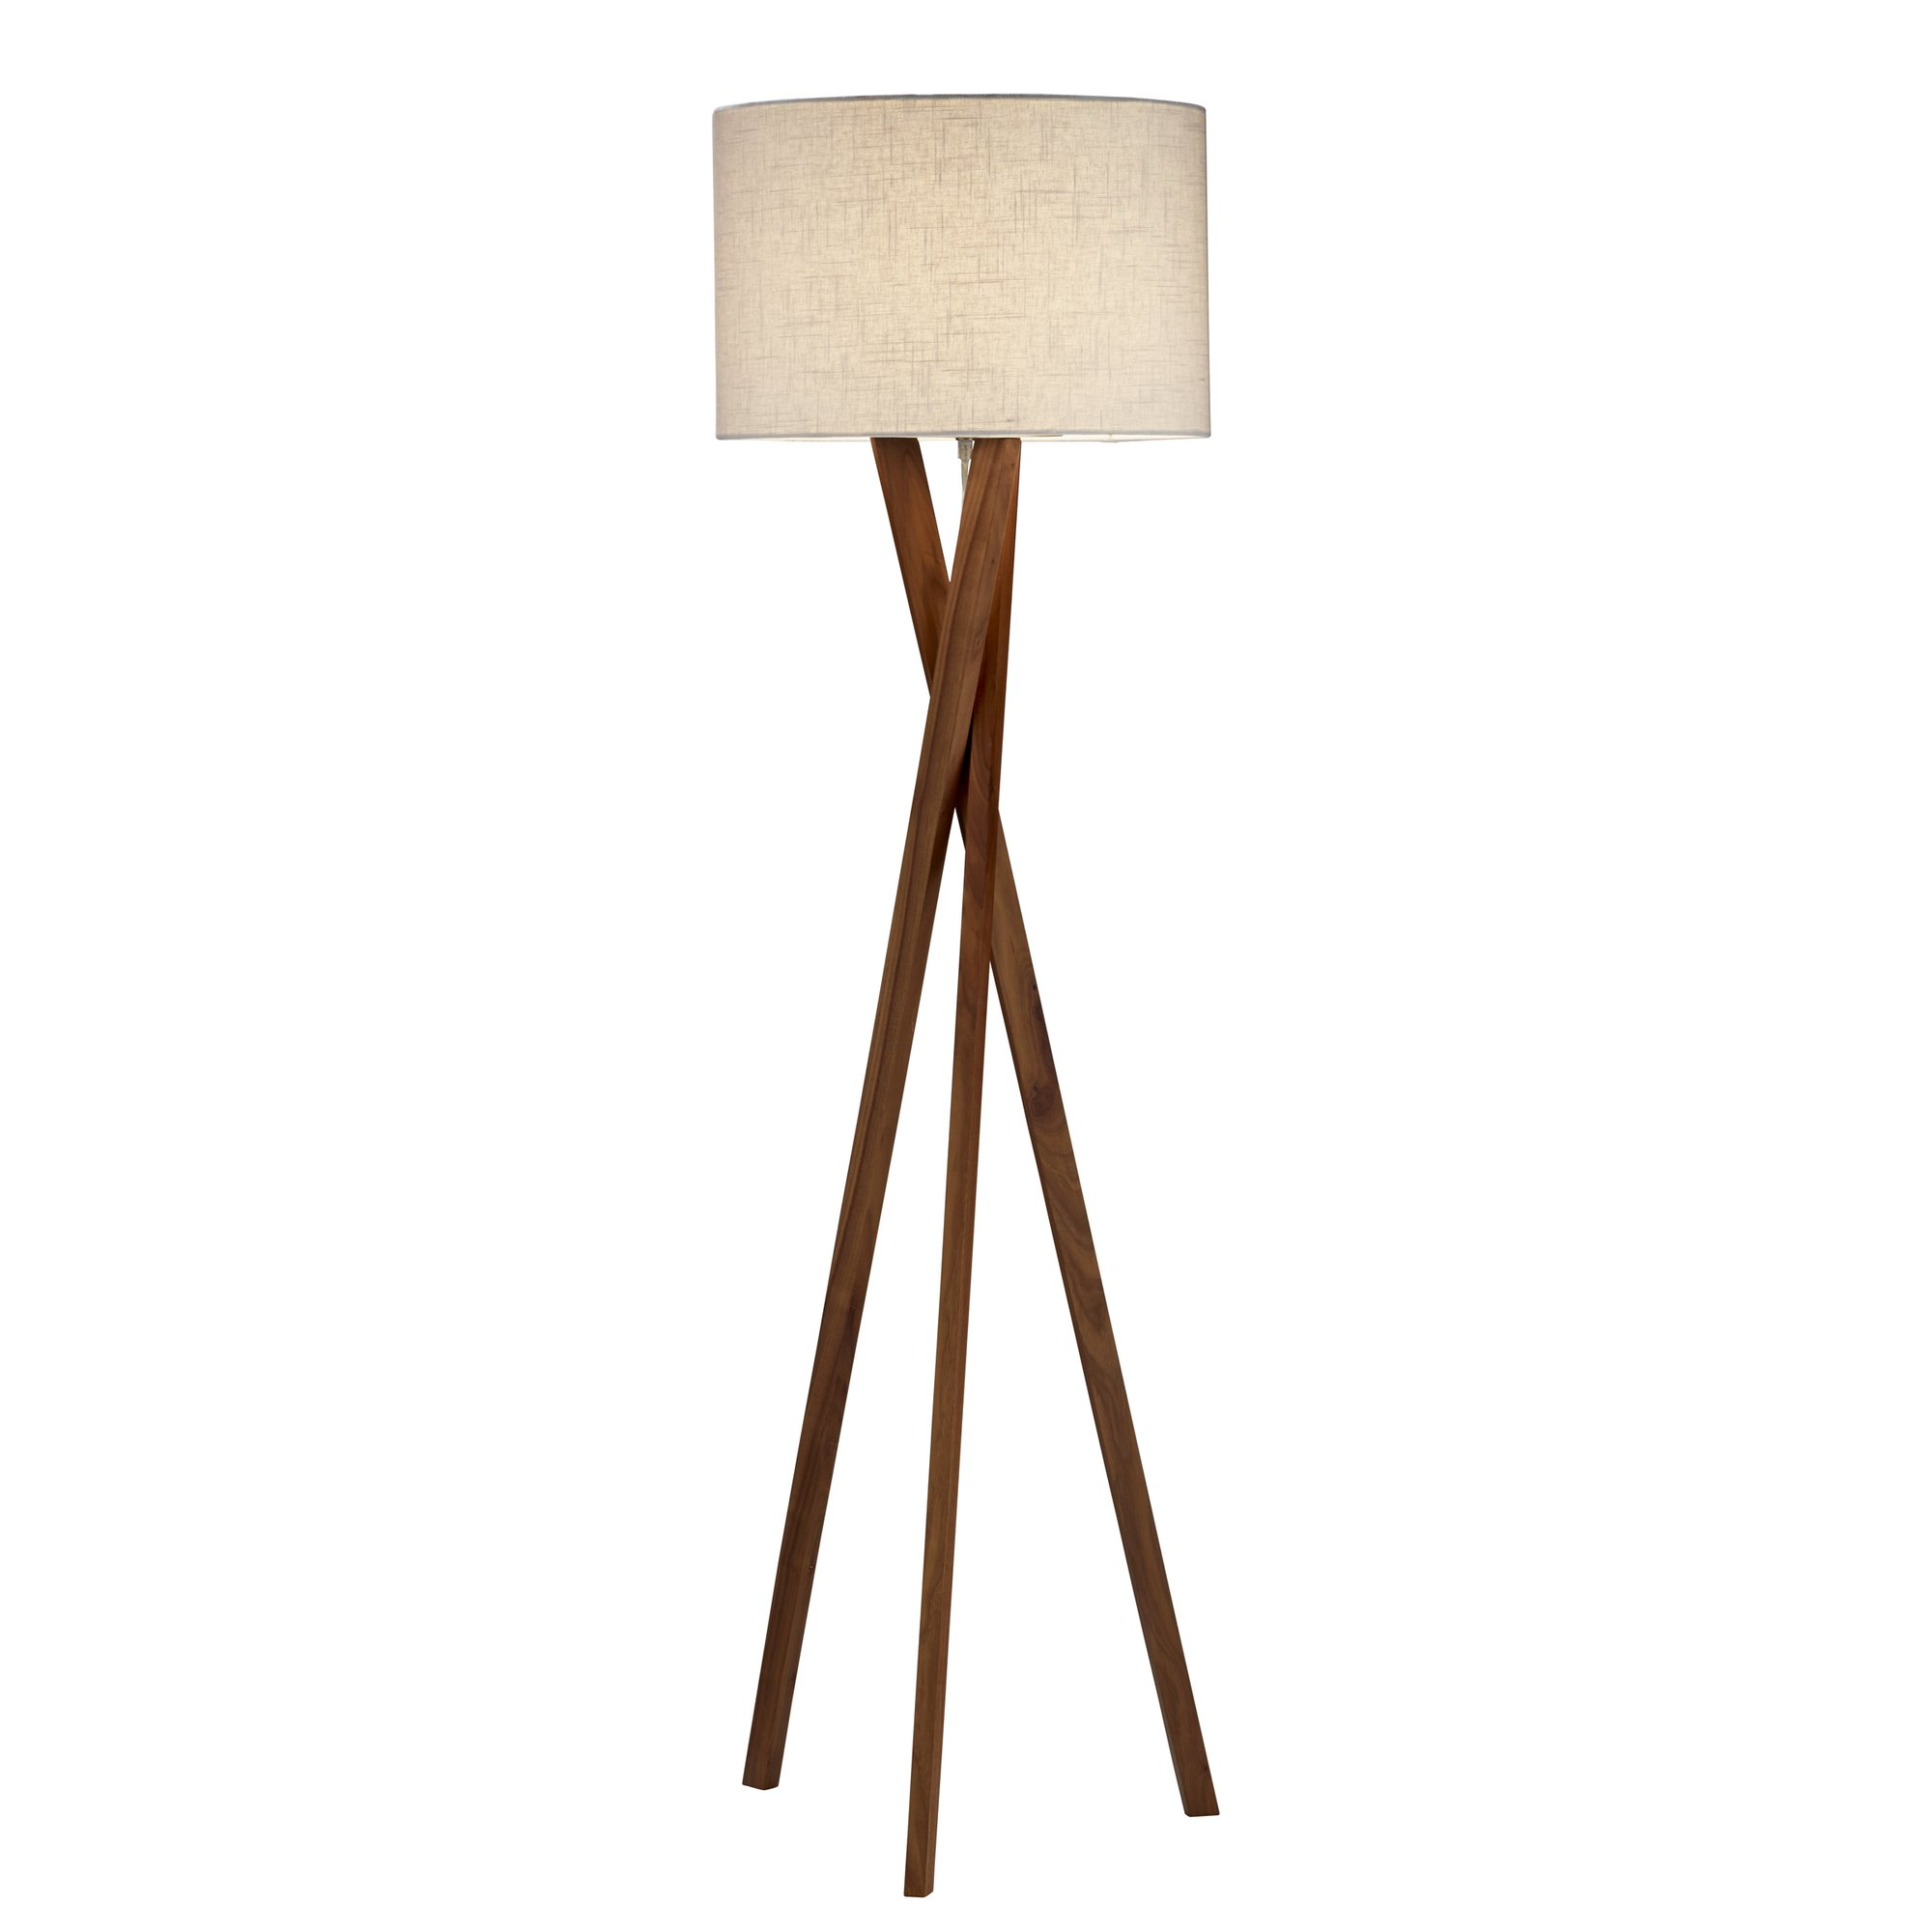 TOP 10 Modern floor lamps 2017